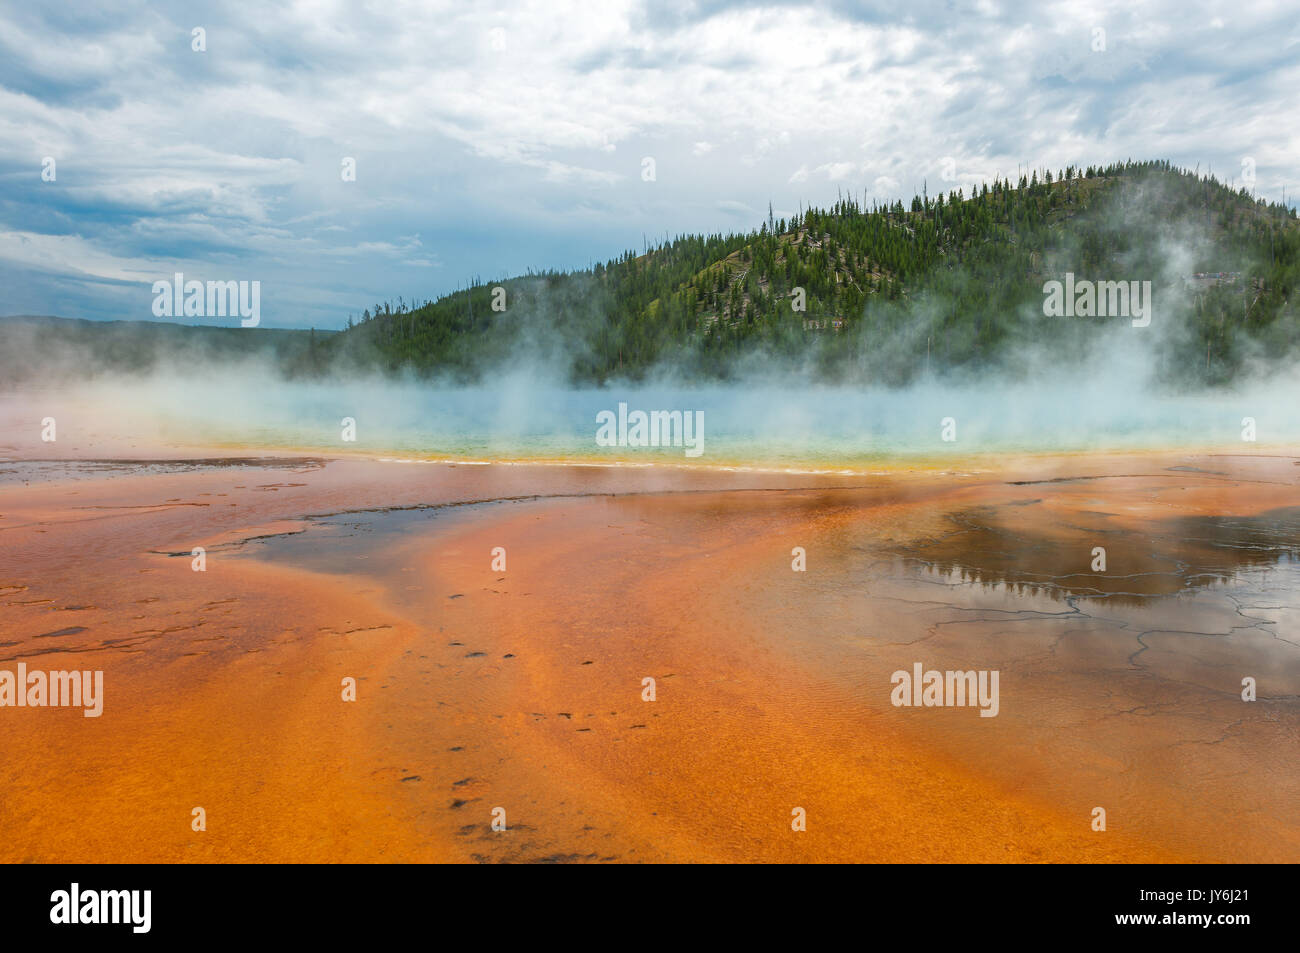 The majestic and colourful hot spring of the Grand Prismatic Spring inside Yellowstone National Park, Wyoming, USA. - Stock Image